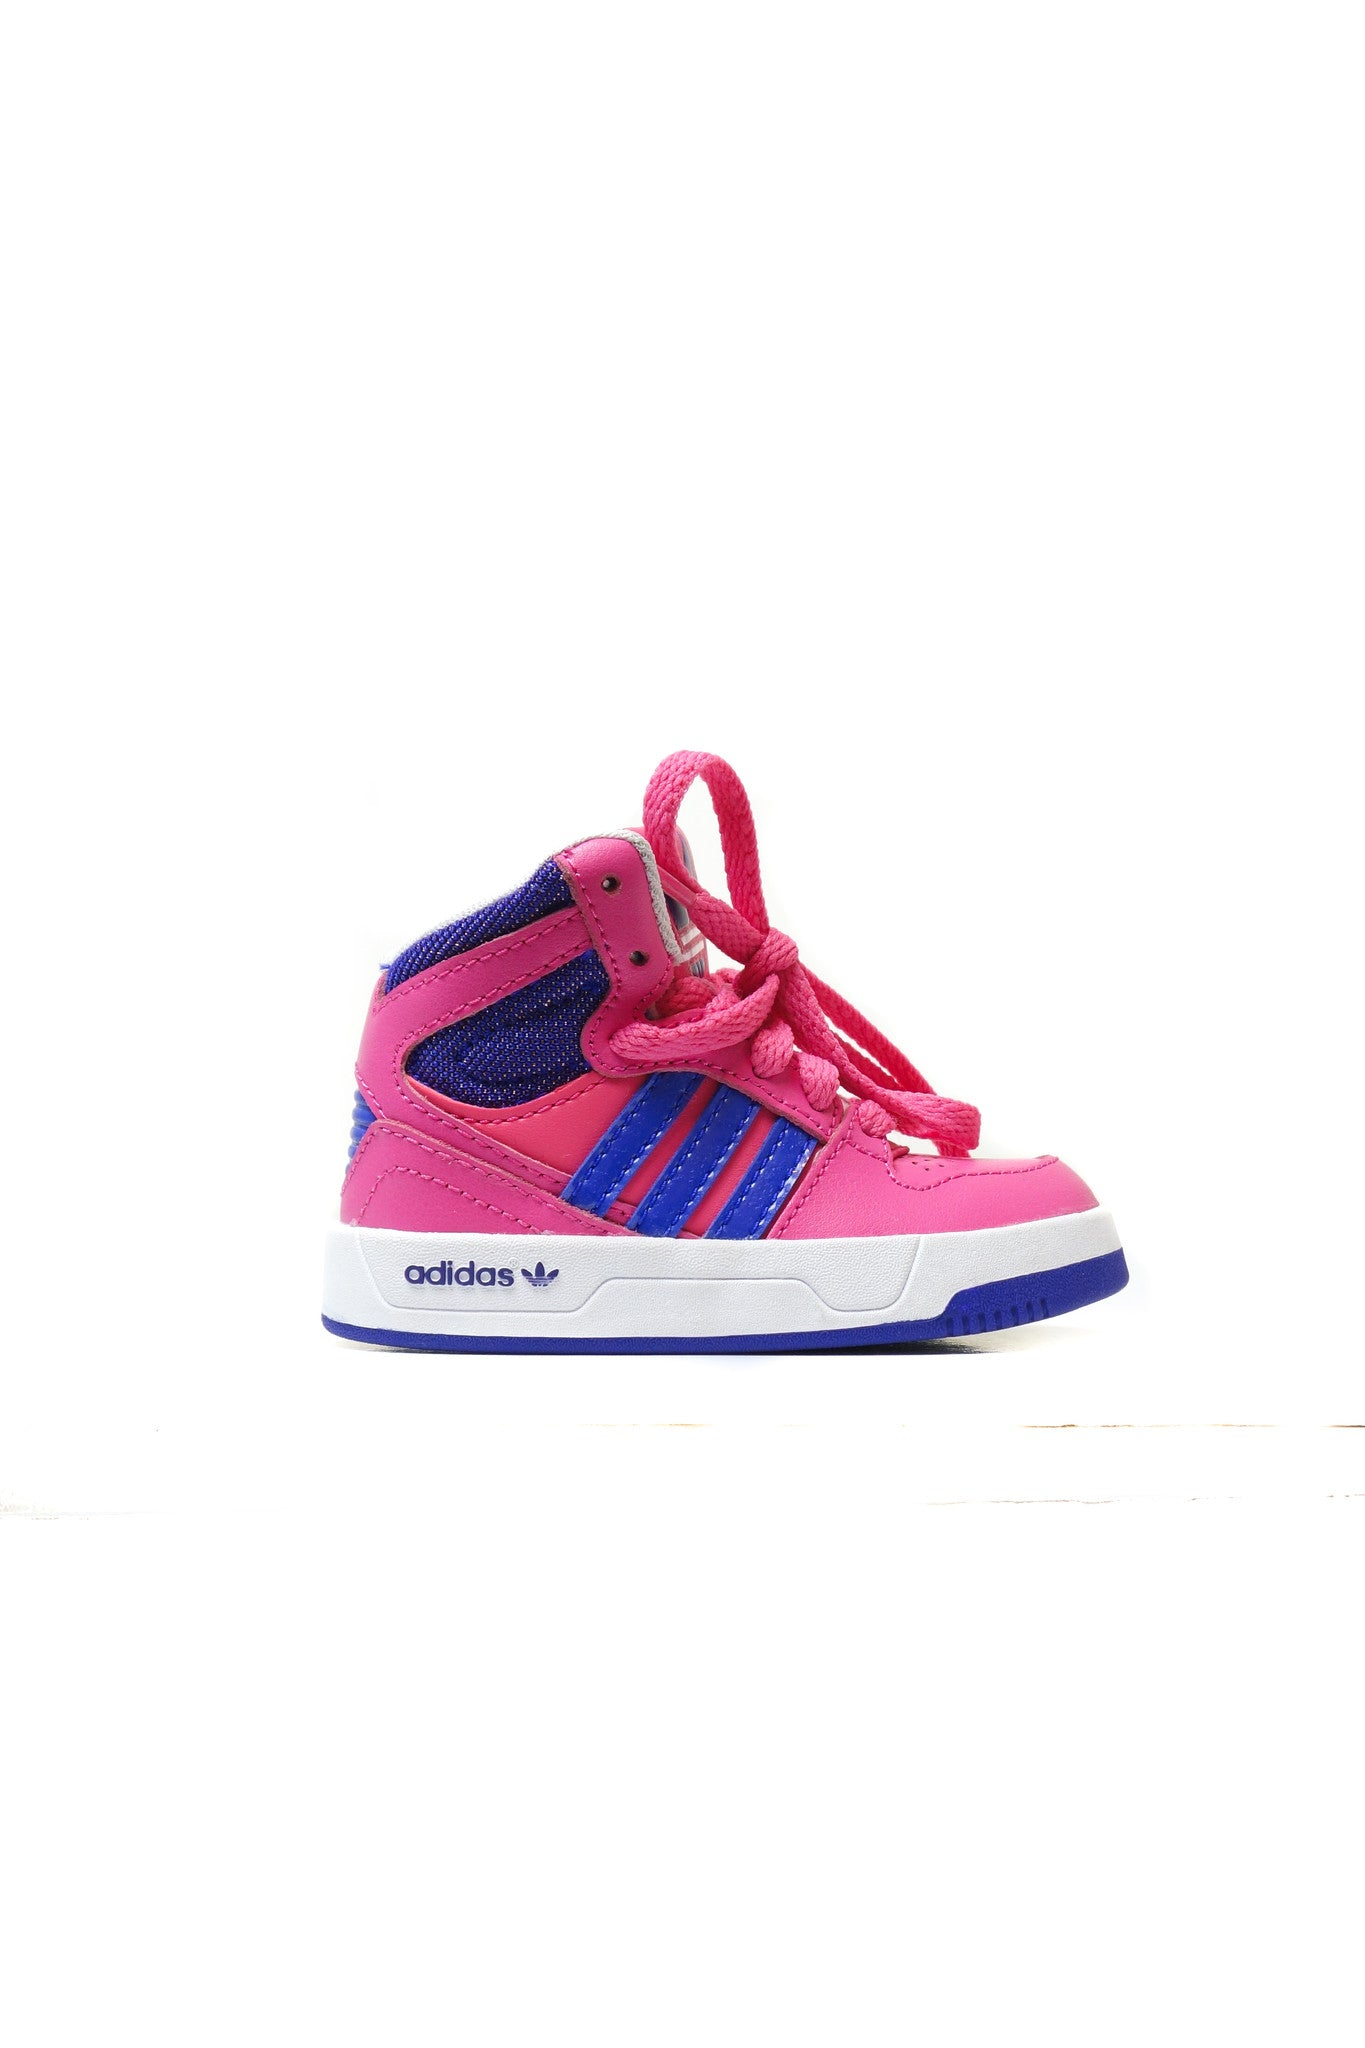 10001586 Adidas Baby~Shoes 12-18M (US 5) at Retykle